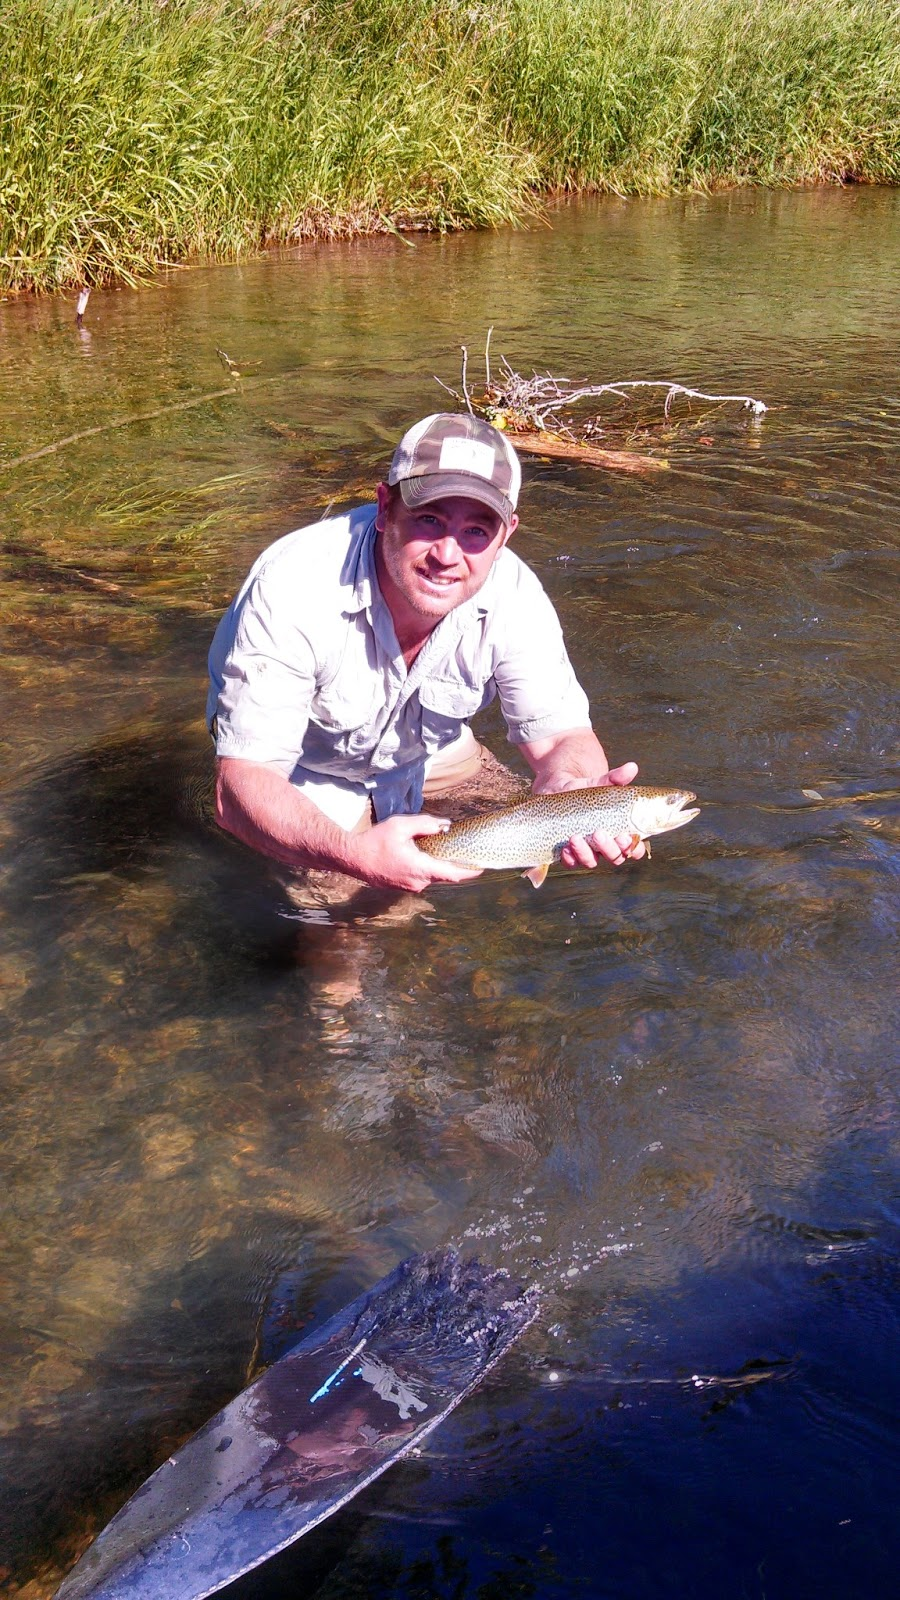 Rogue river and southern oregon fly fishing guide june 2013 for Rogue river oregon fishing